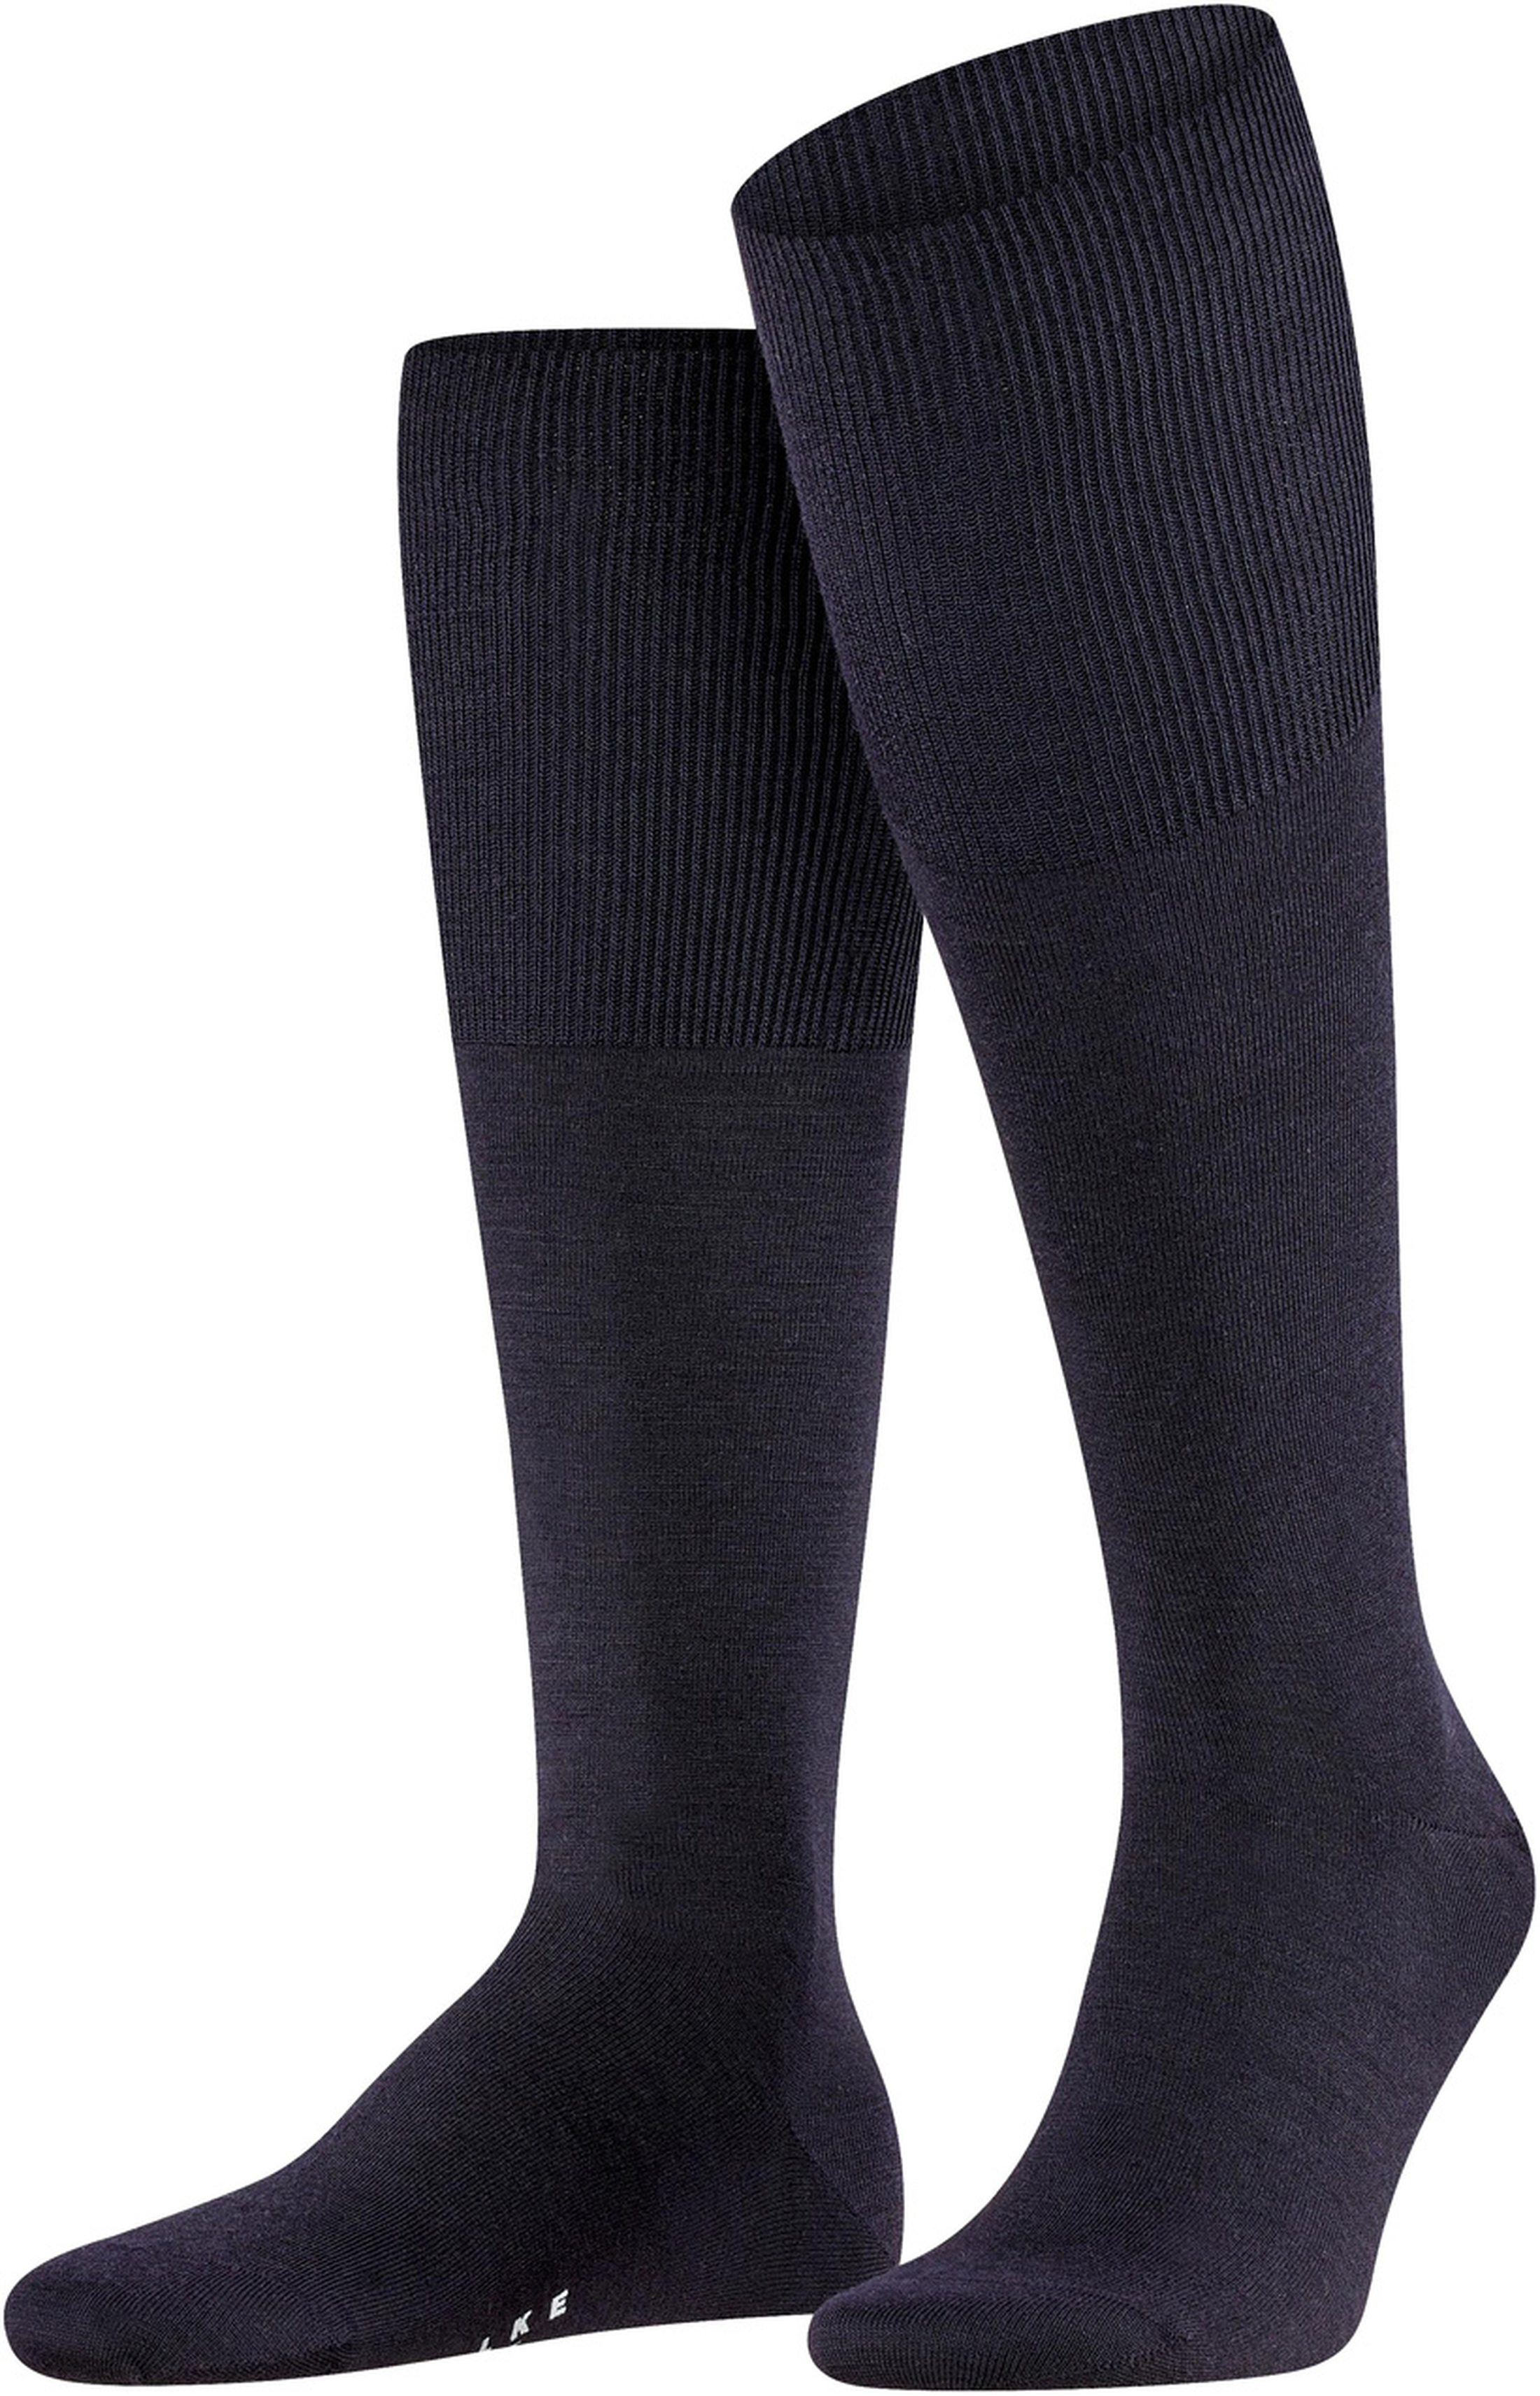 Falke Airport Knee Socks Navy 6370